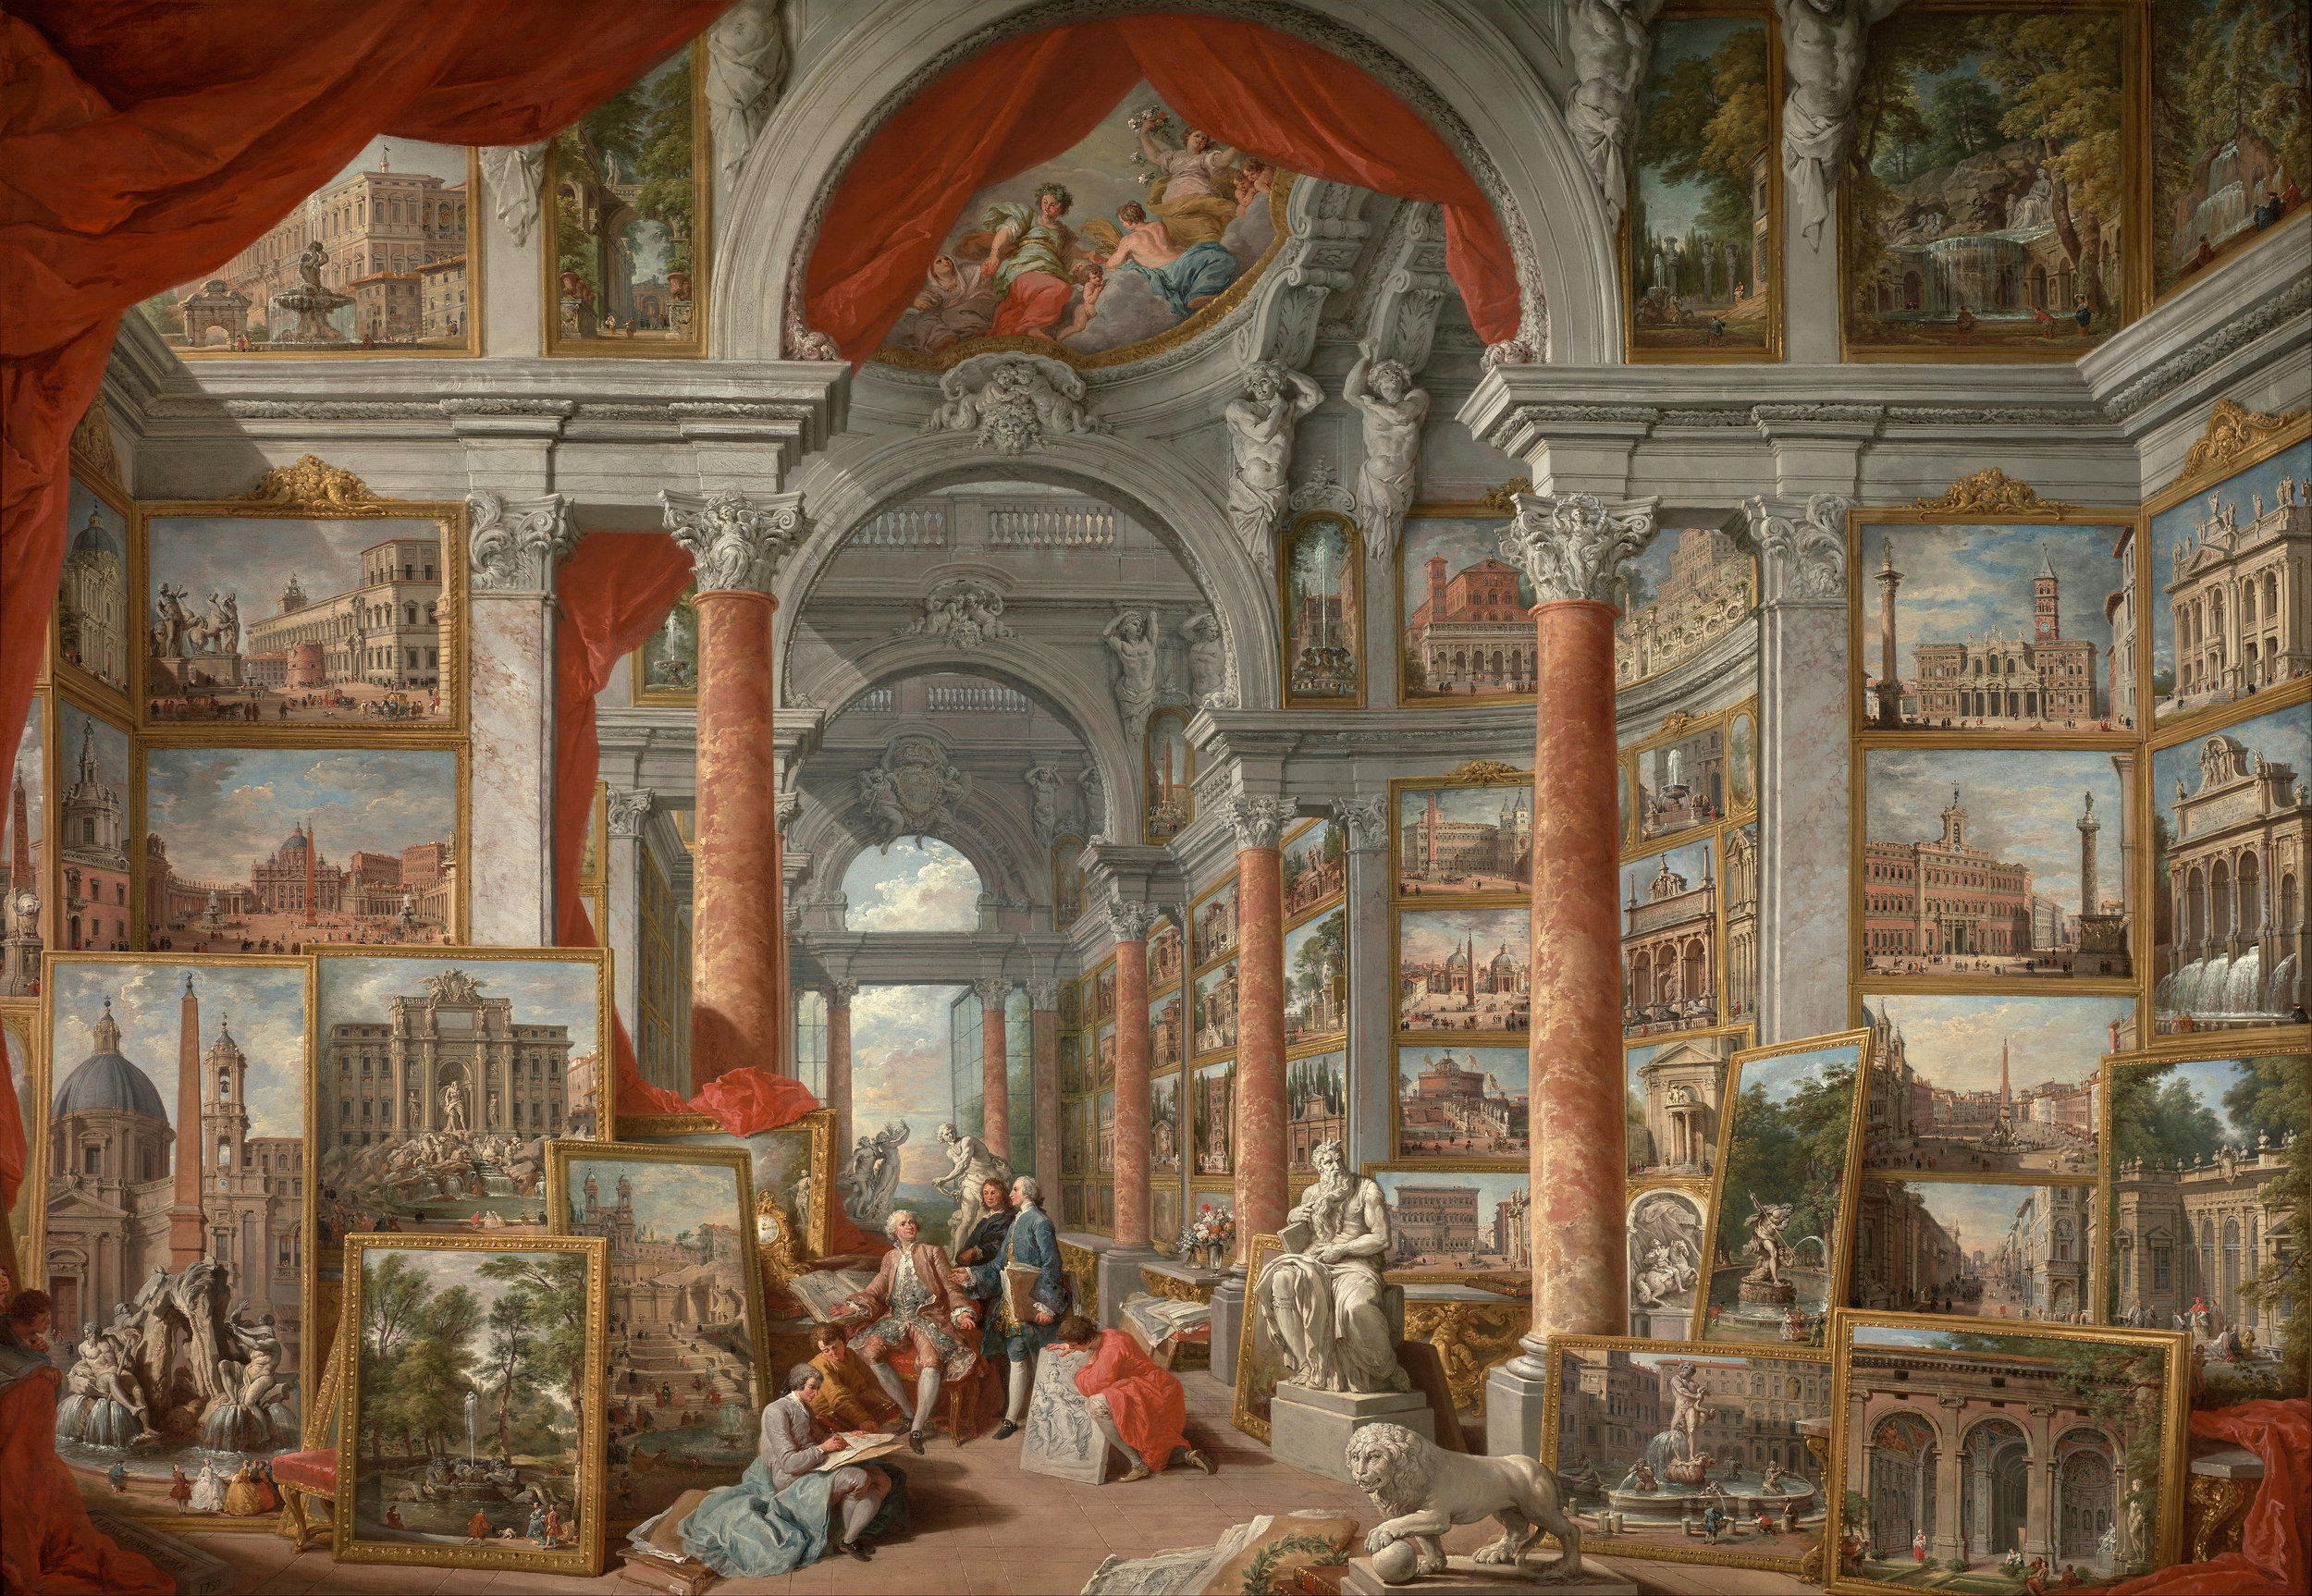 Giovanni_Paolo_Pannini_-_Picture_Gallery_with_Views_of_Modern_Rome_-_Google_Art_Project.jpg